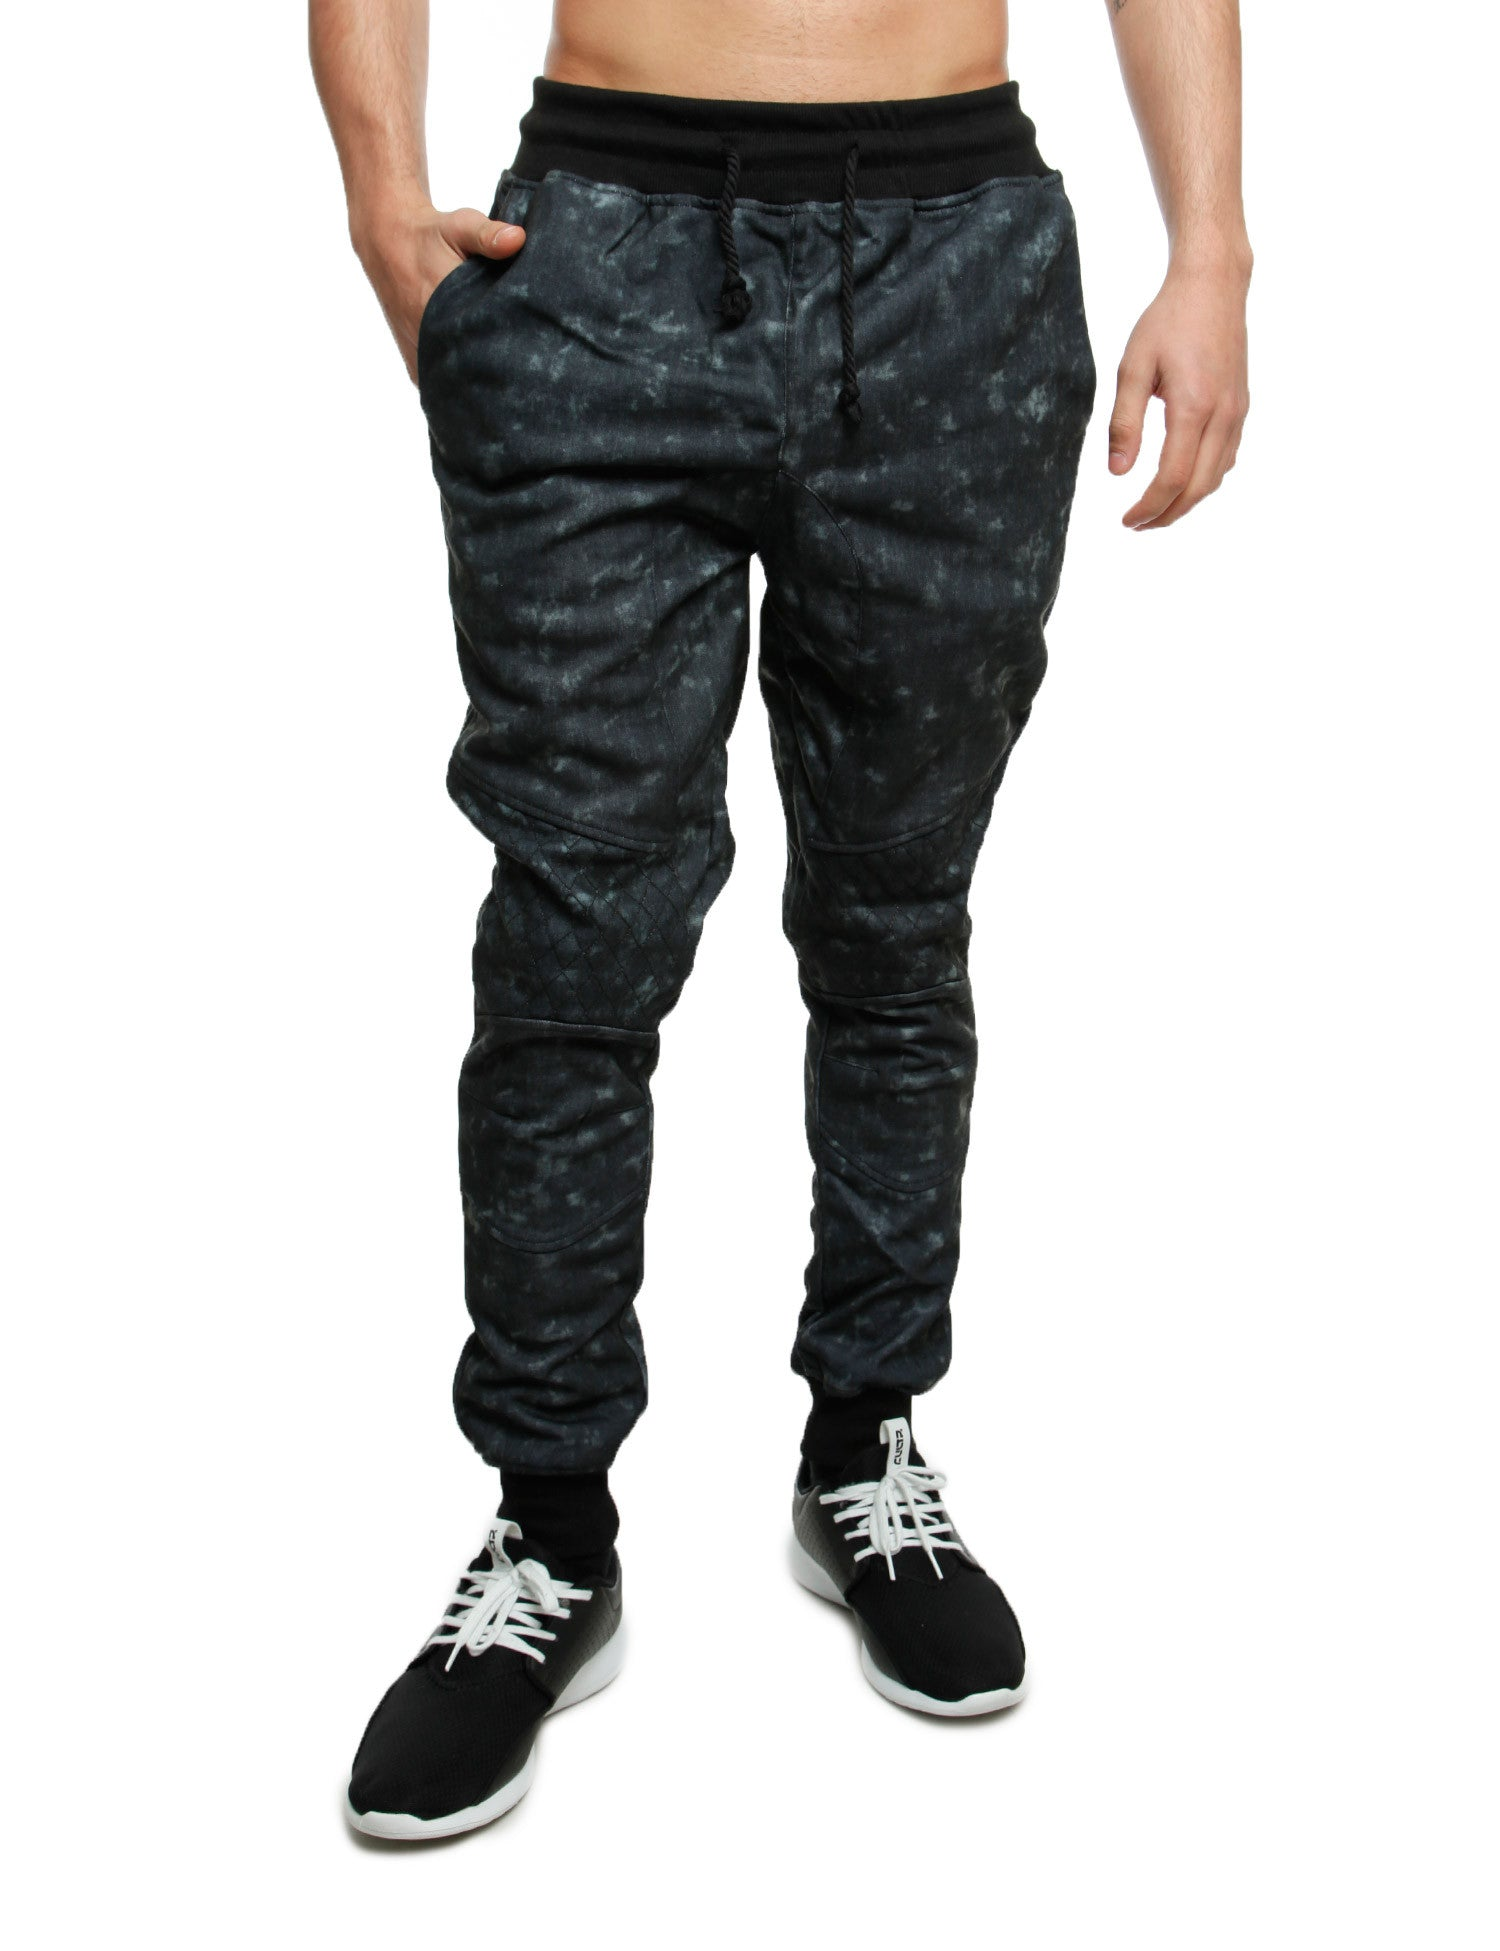 Imperious Denim Effect Sweatpant FP562 Black